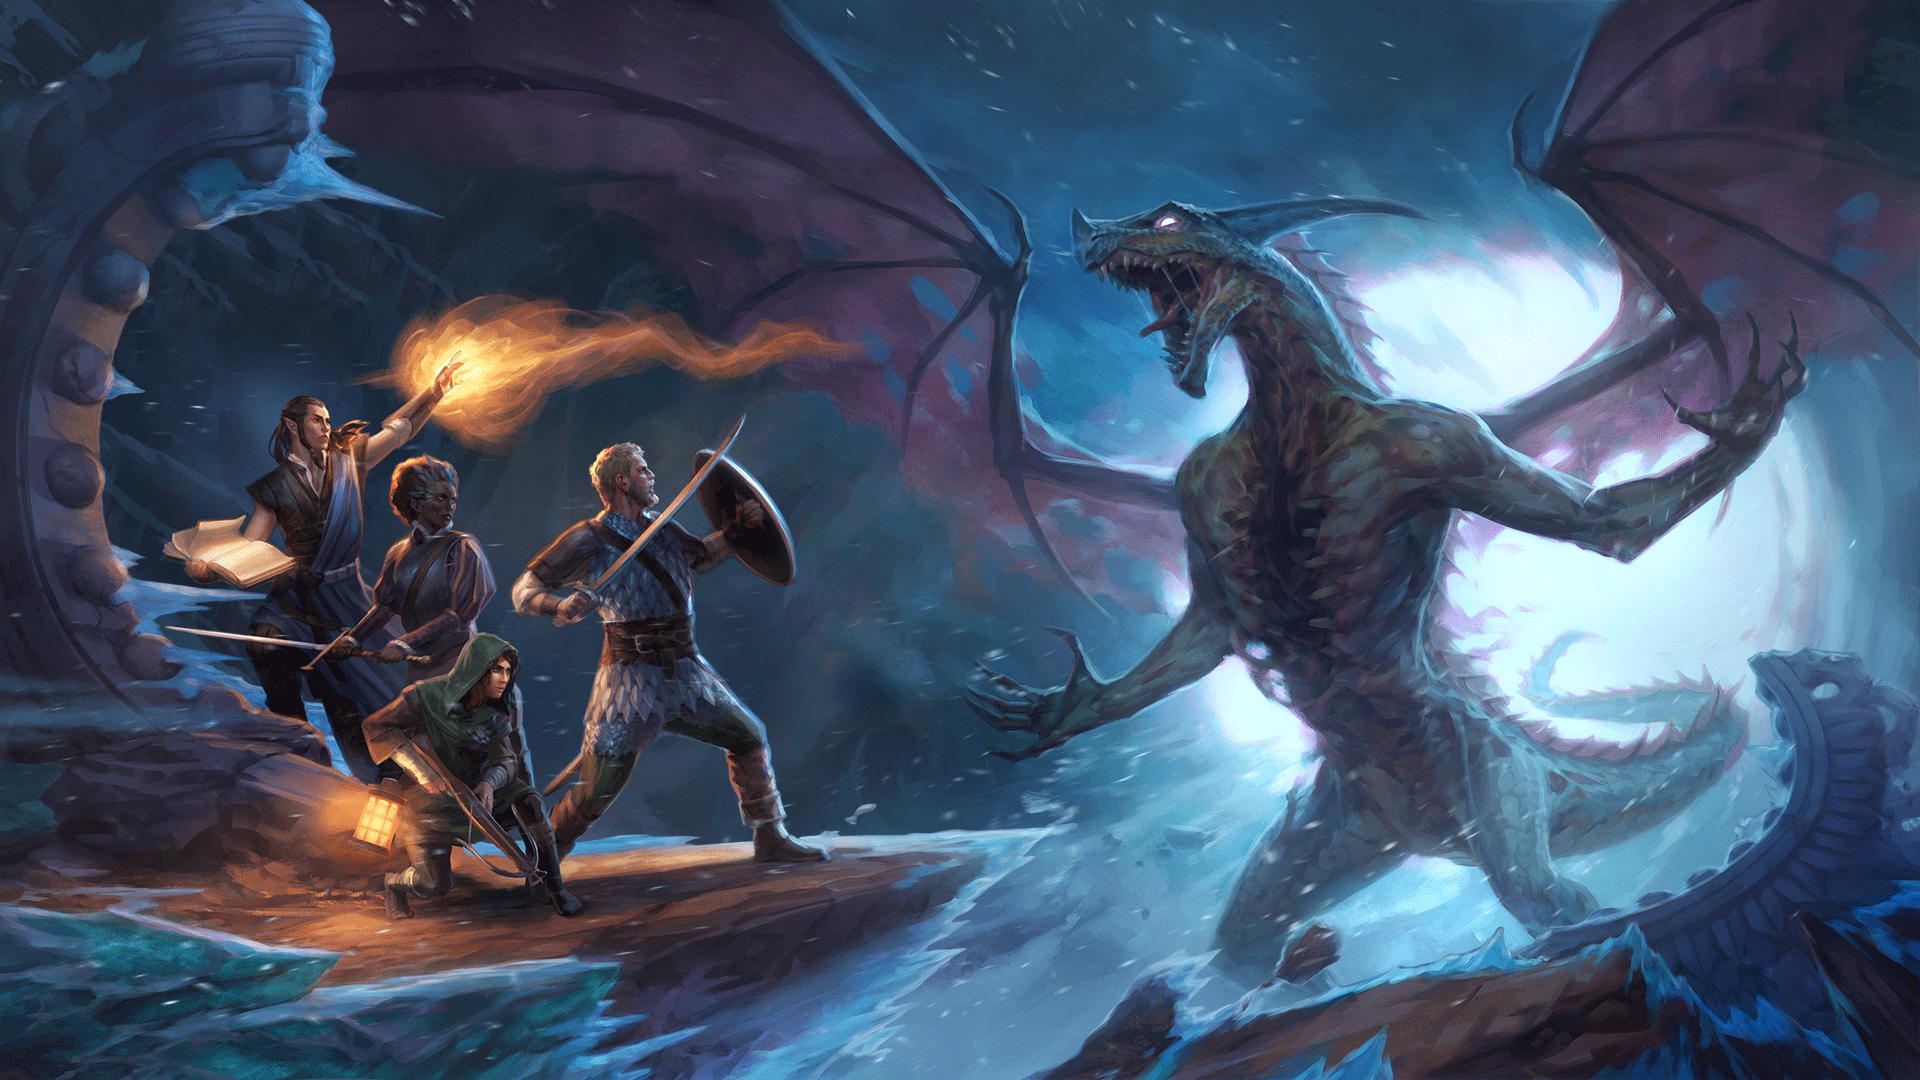 Pillars Of Eternity Wallpaper: Pillars Of Eternity II Deadfire Hd Wallpaper (60